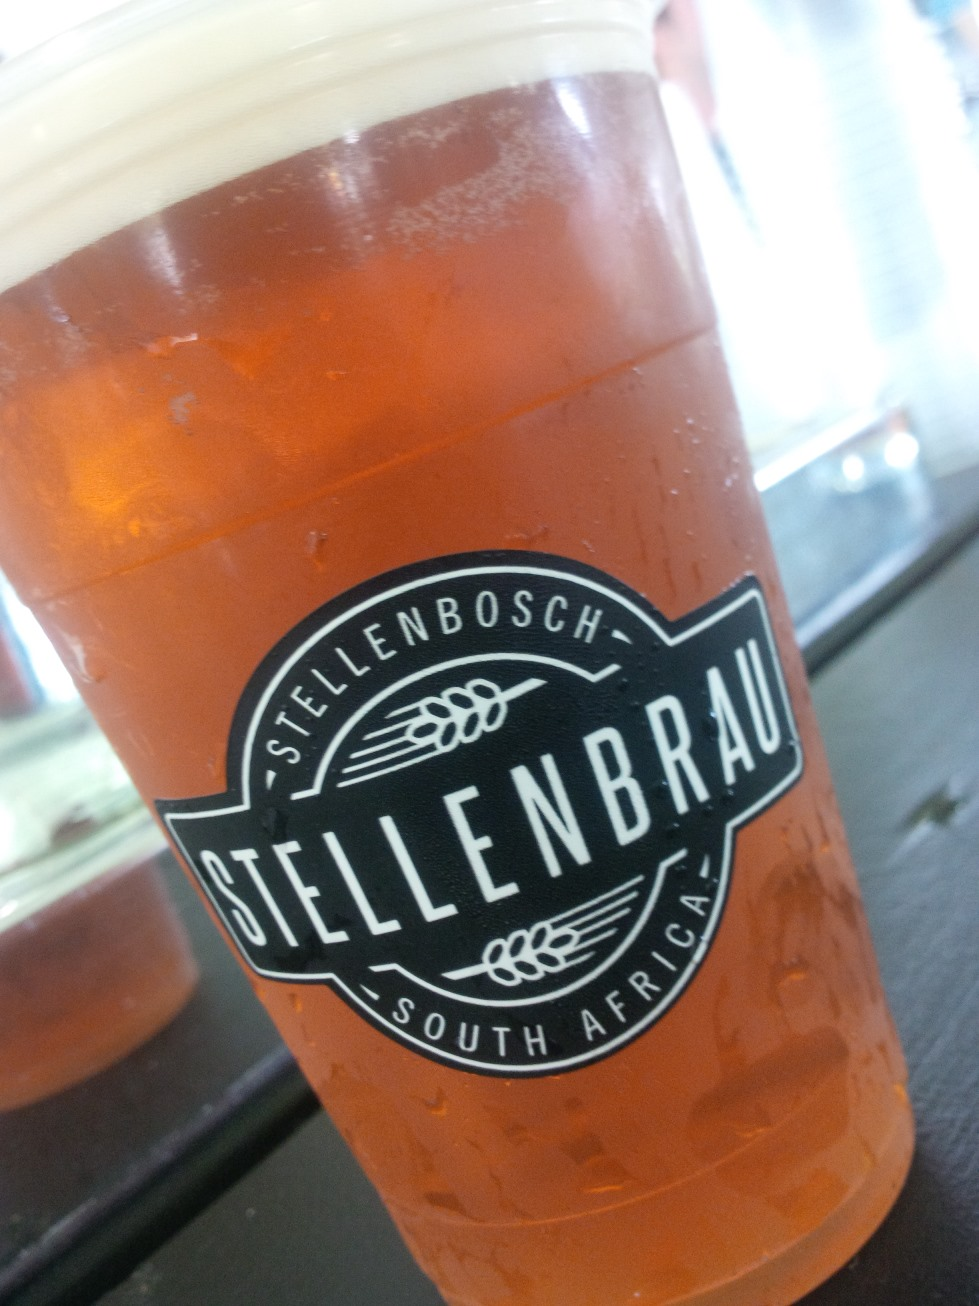 stellenbrau governor red lager rooibos